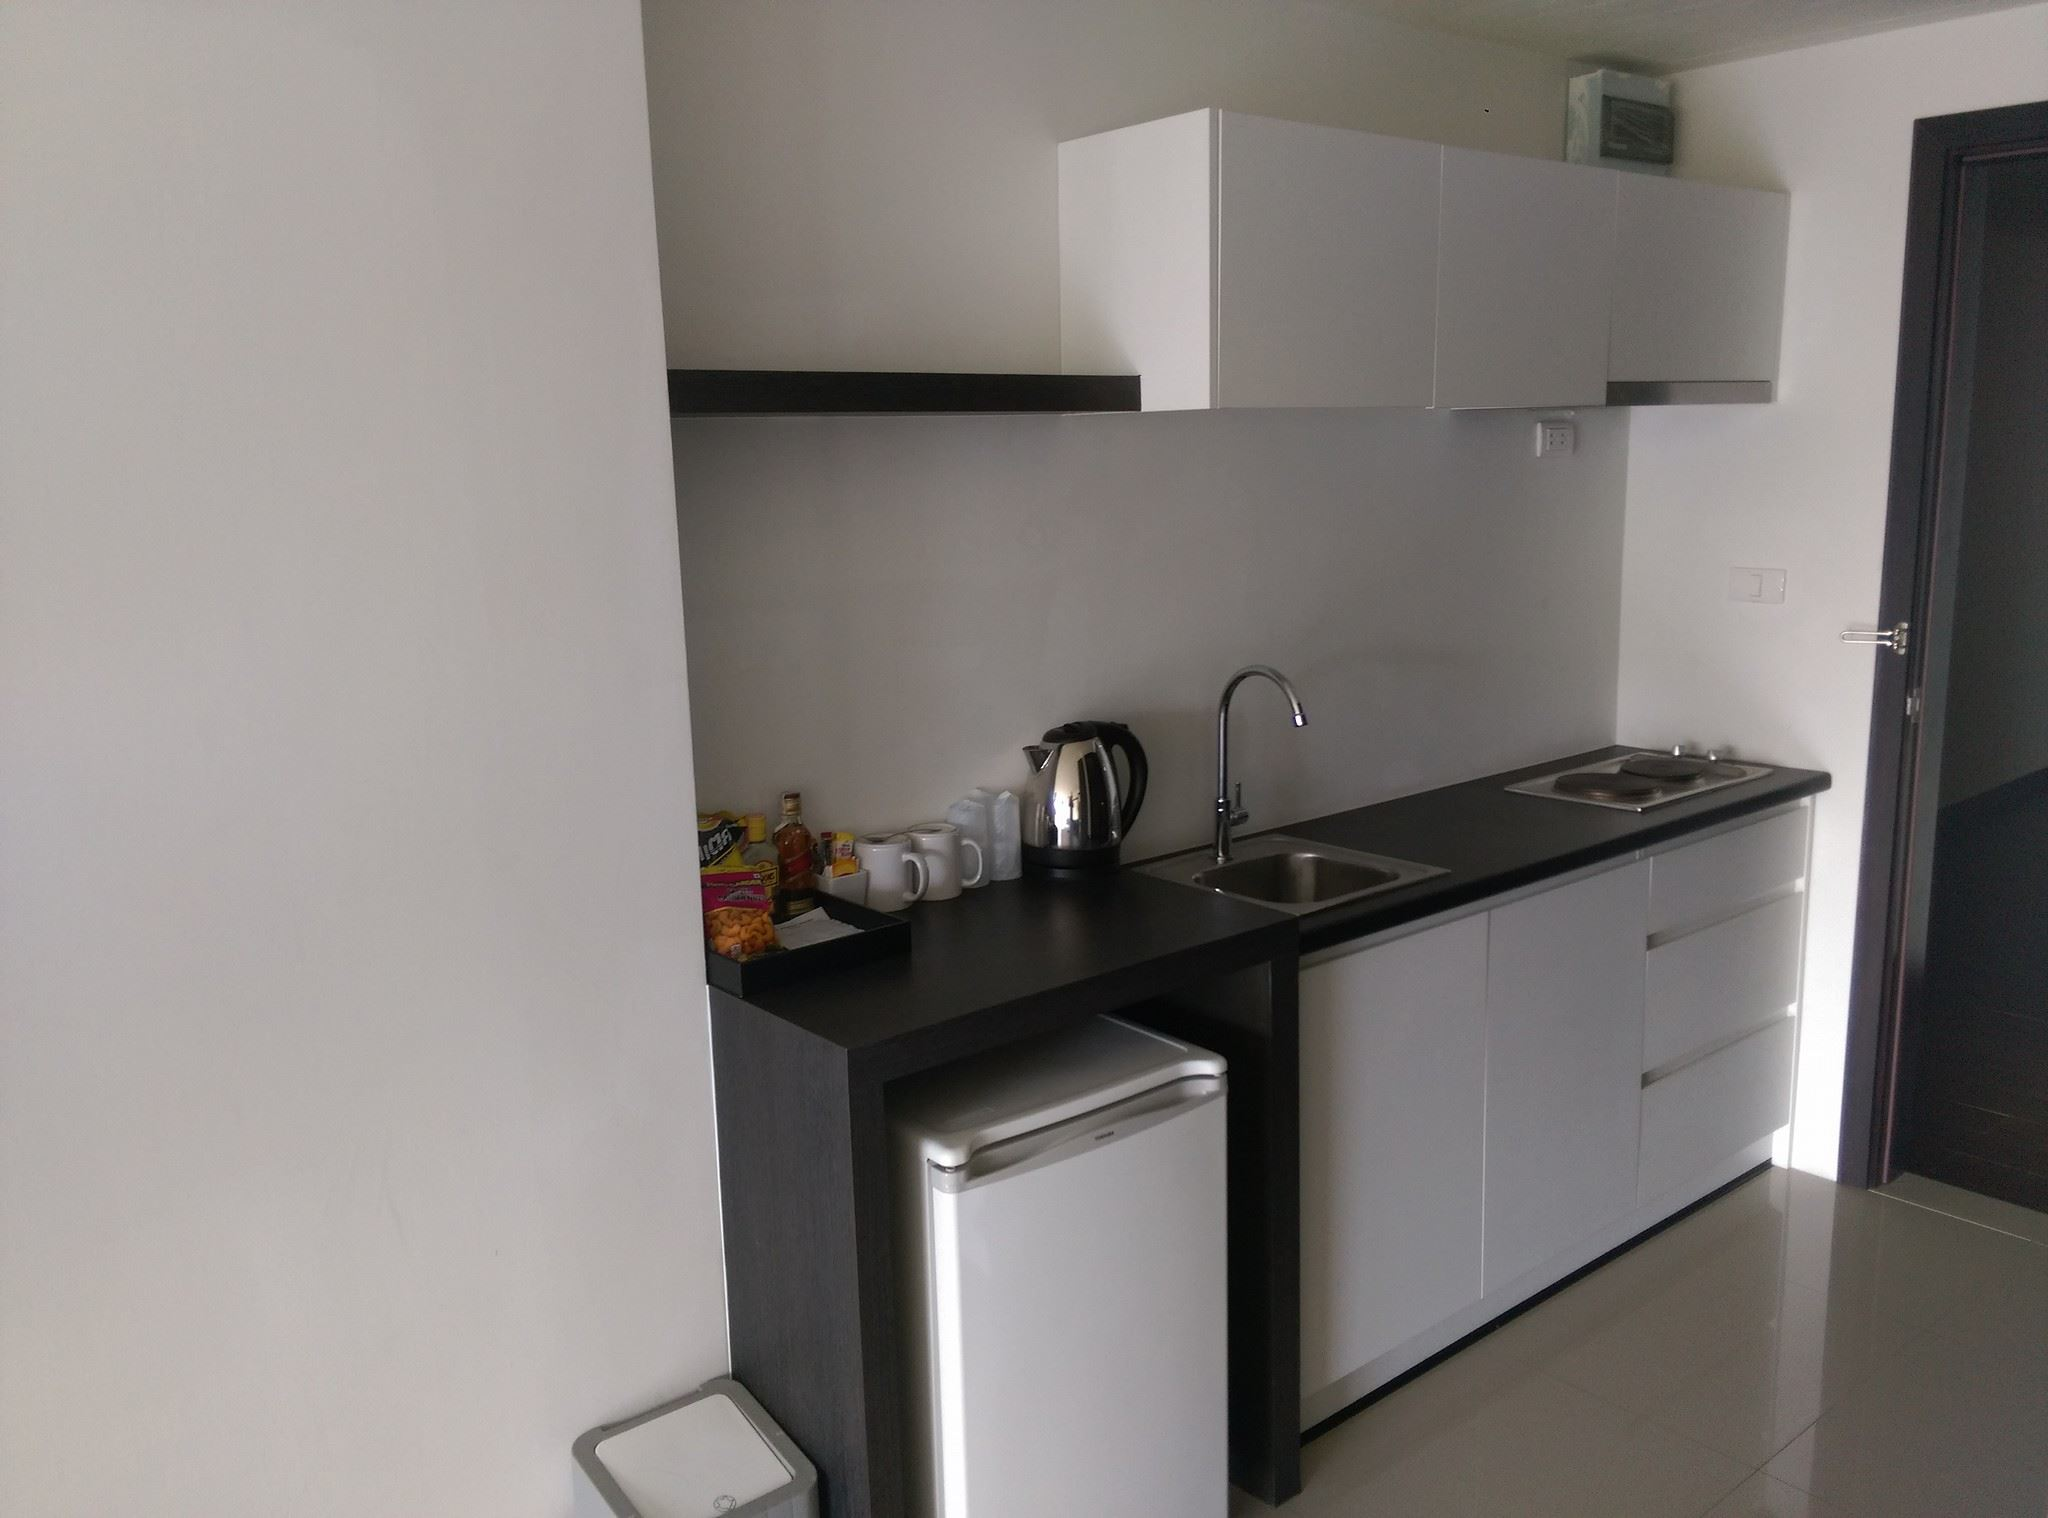 Apartment for rent - patong beach